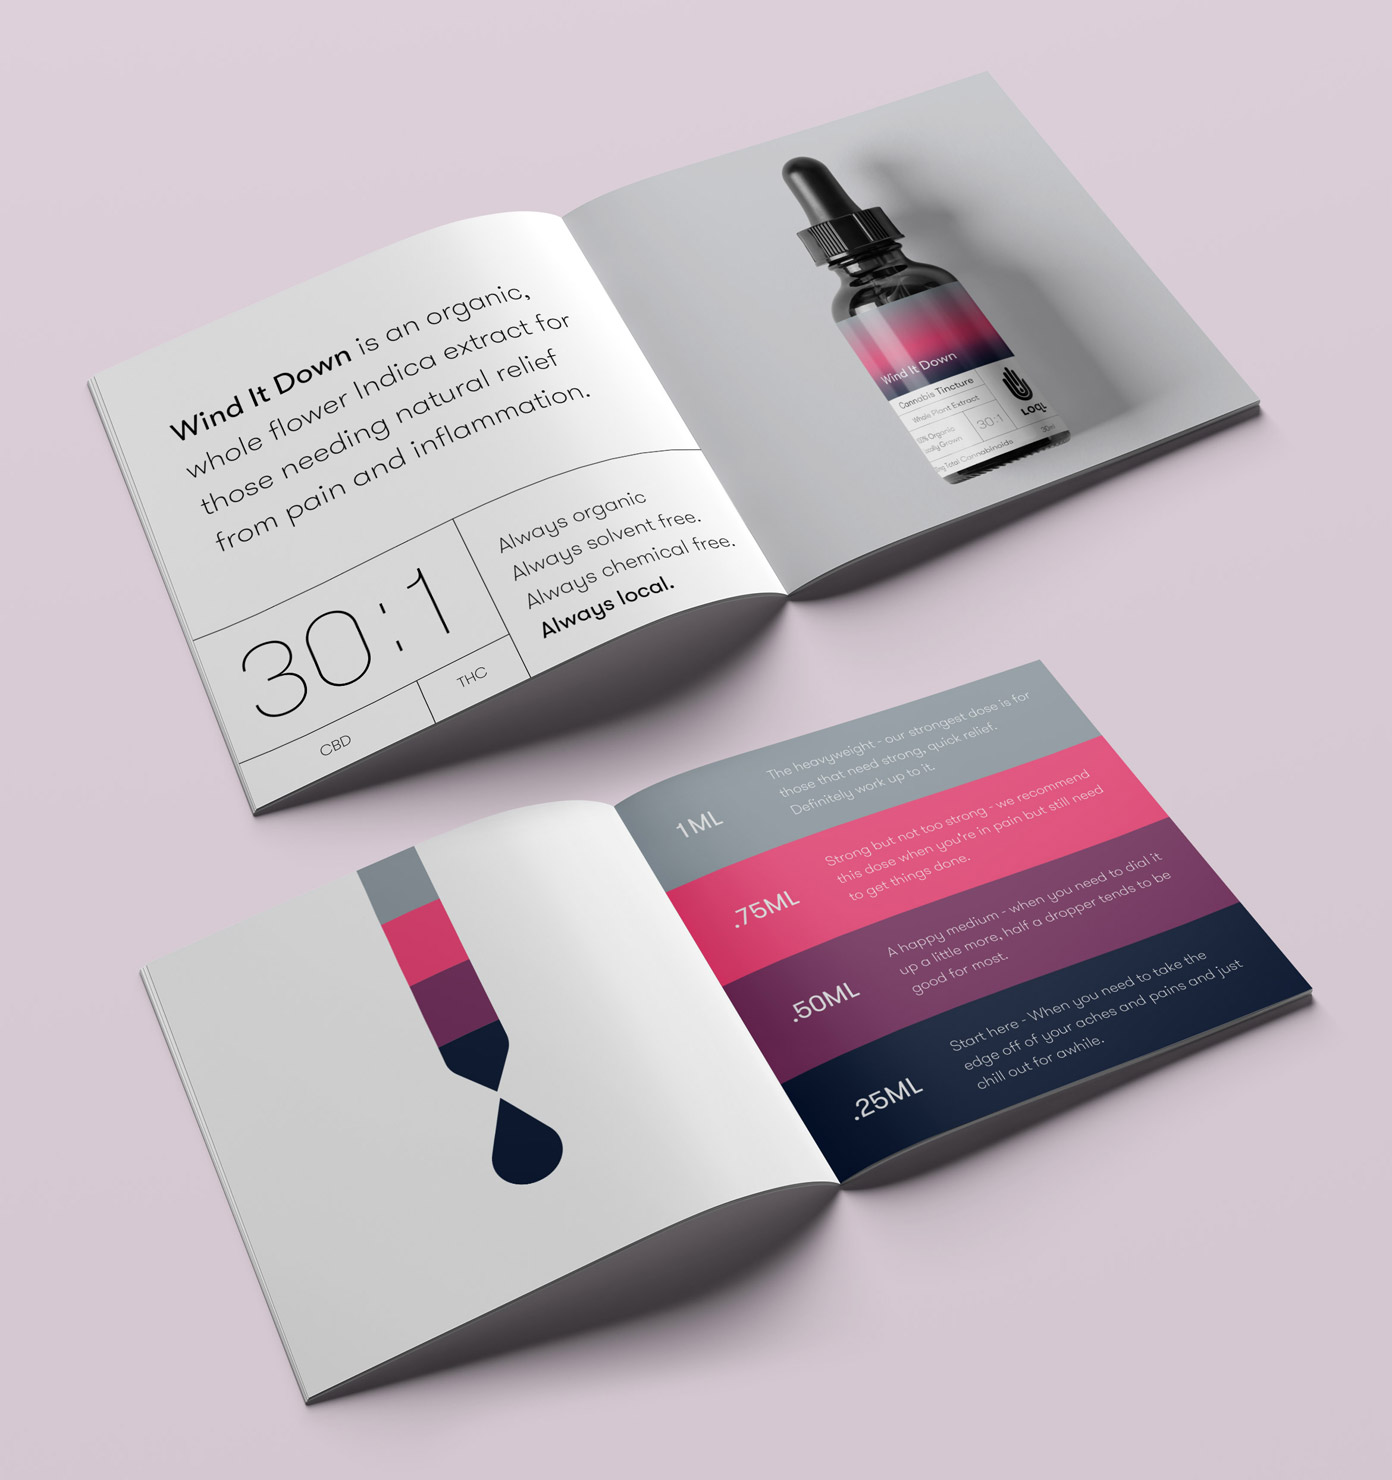 LOQL brochure spreads combo